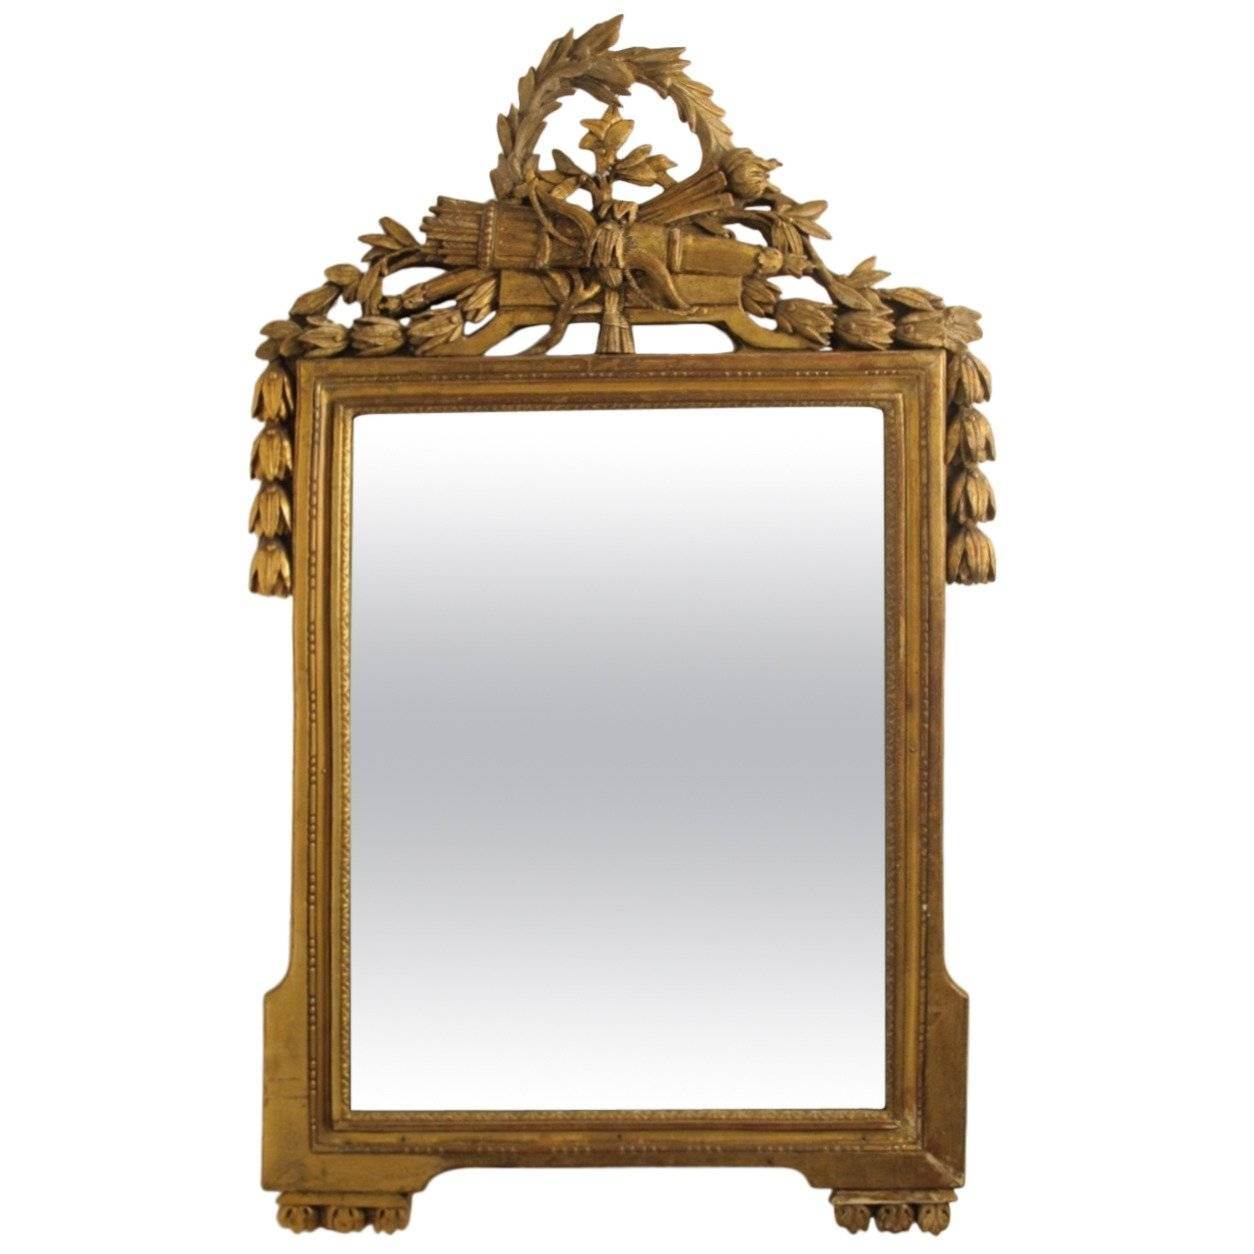 18Th Century Louis Xvi Gilt Framed Mirror For Sale At 1Stdibs pertaining to Gilt Framed Mirrors (Image 4 of 25)